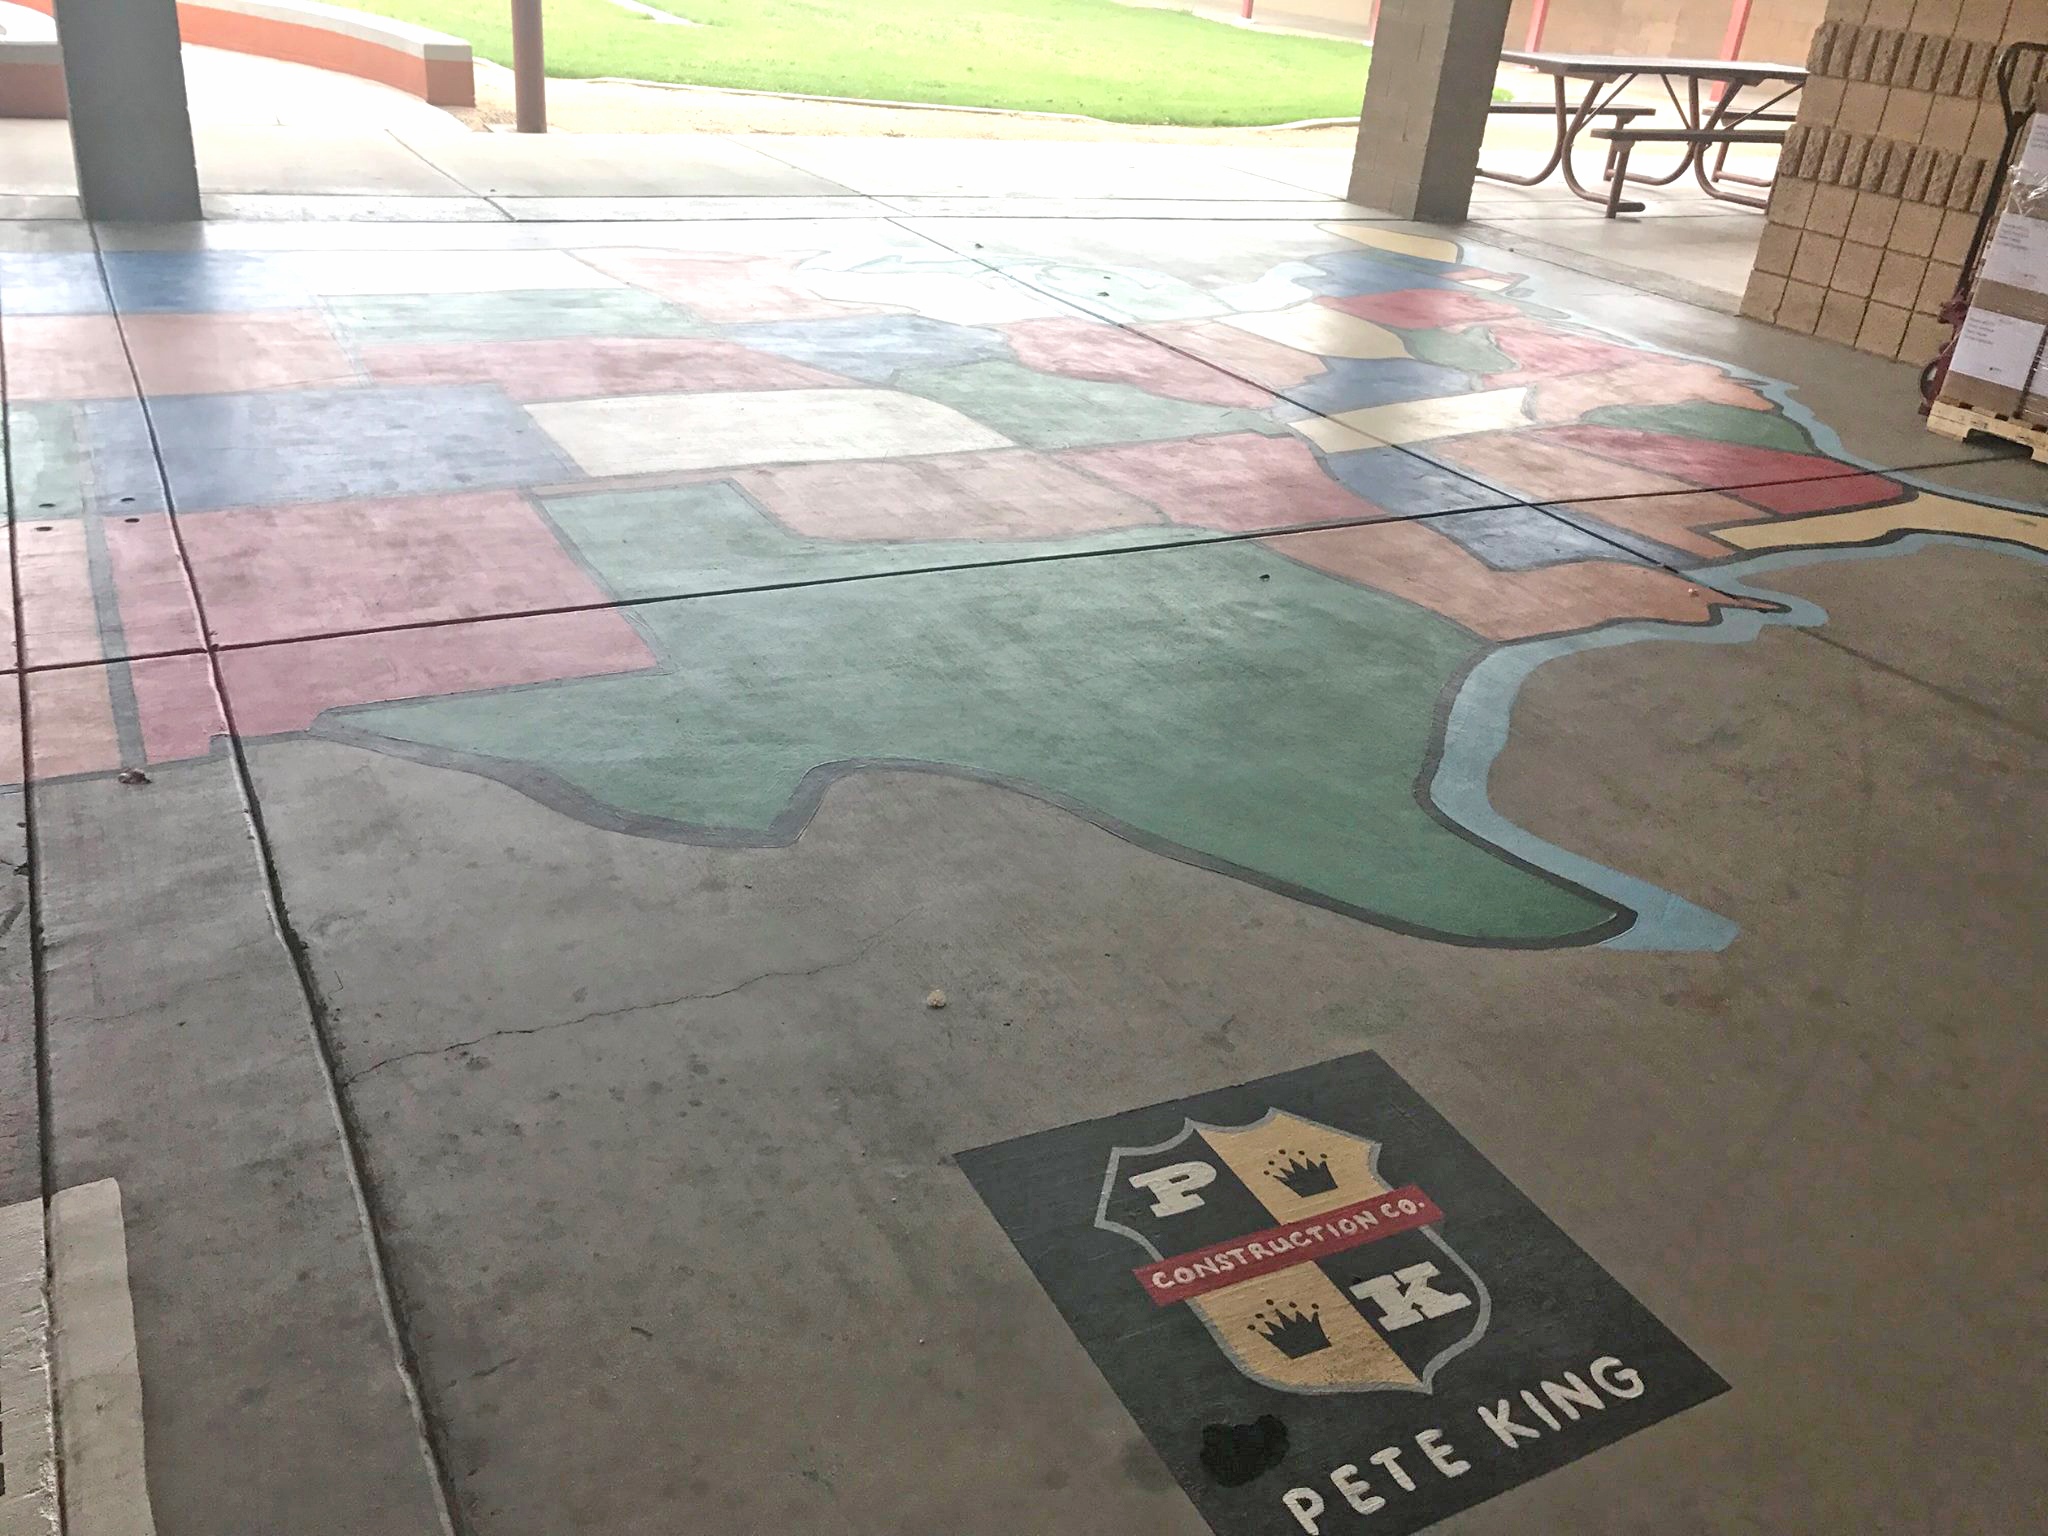 Pete King Construction Donates Map for Sunrise Elementary School